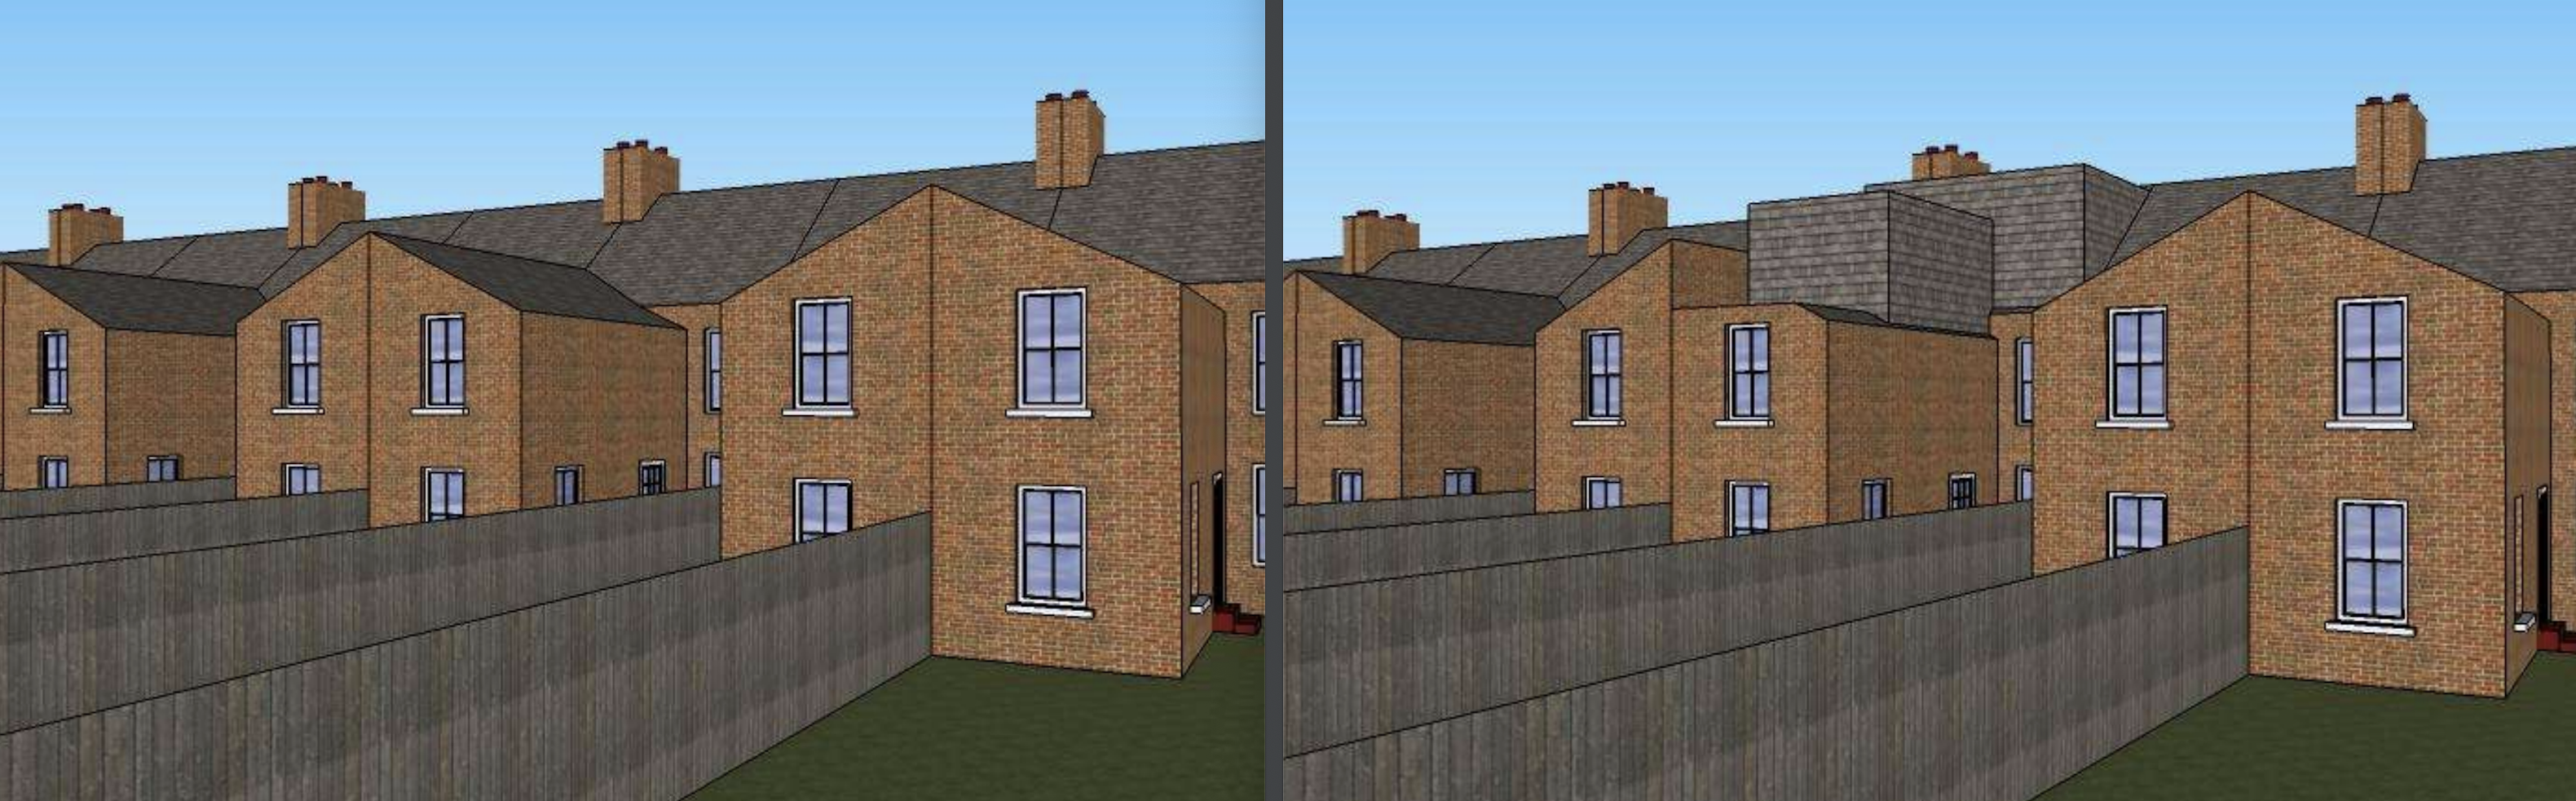 Permitted Development - Loopholes - image L-Shaped-Dormer.-Before-After. on https://rafterloftconversions.co.uk